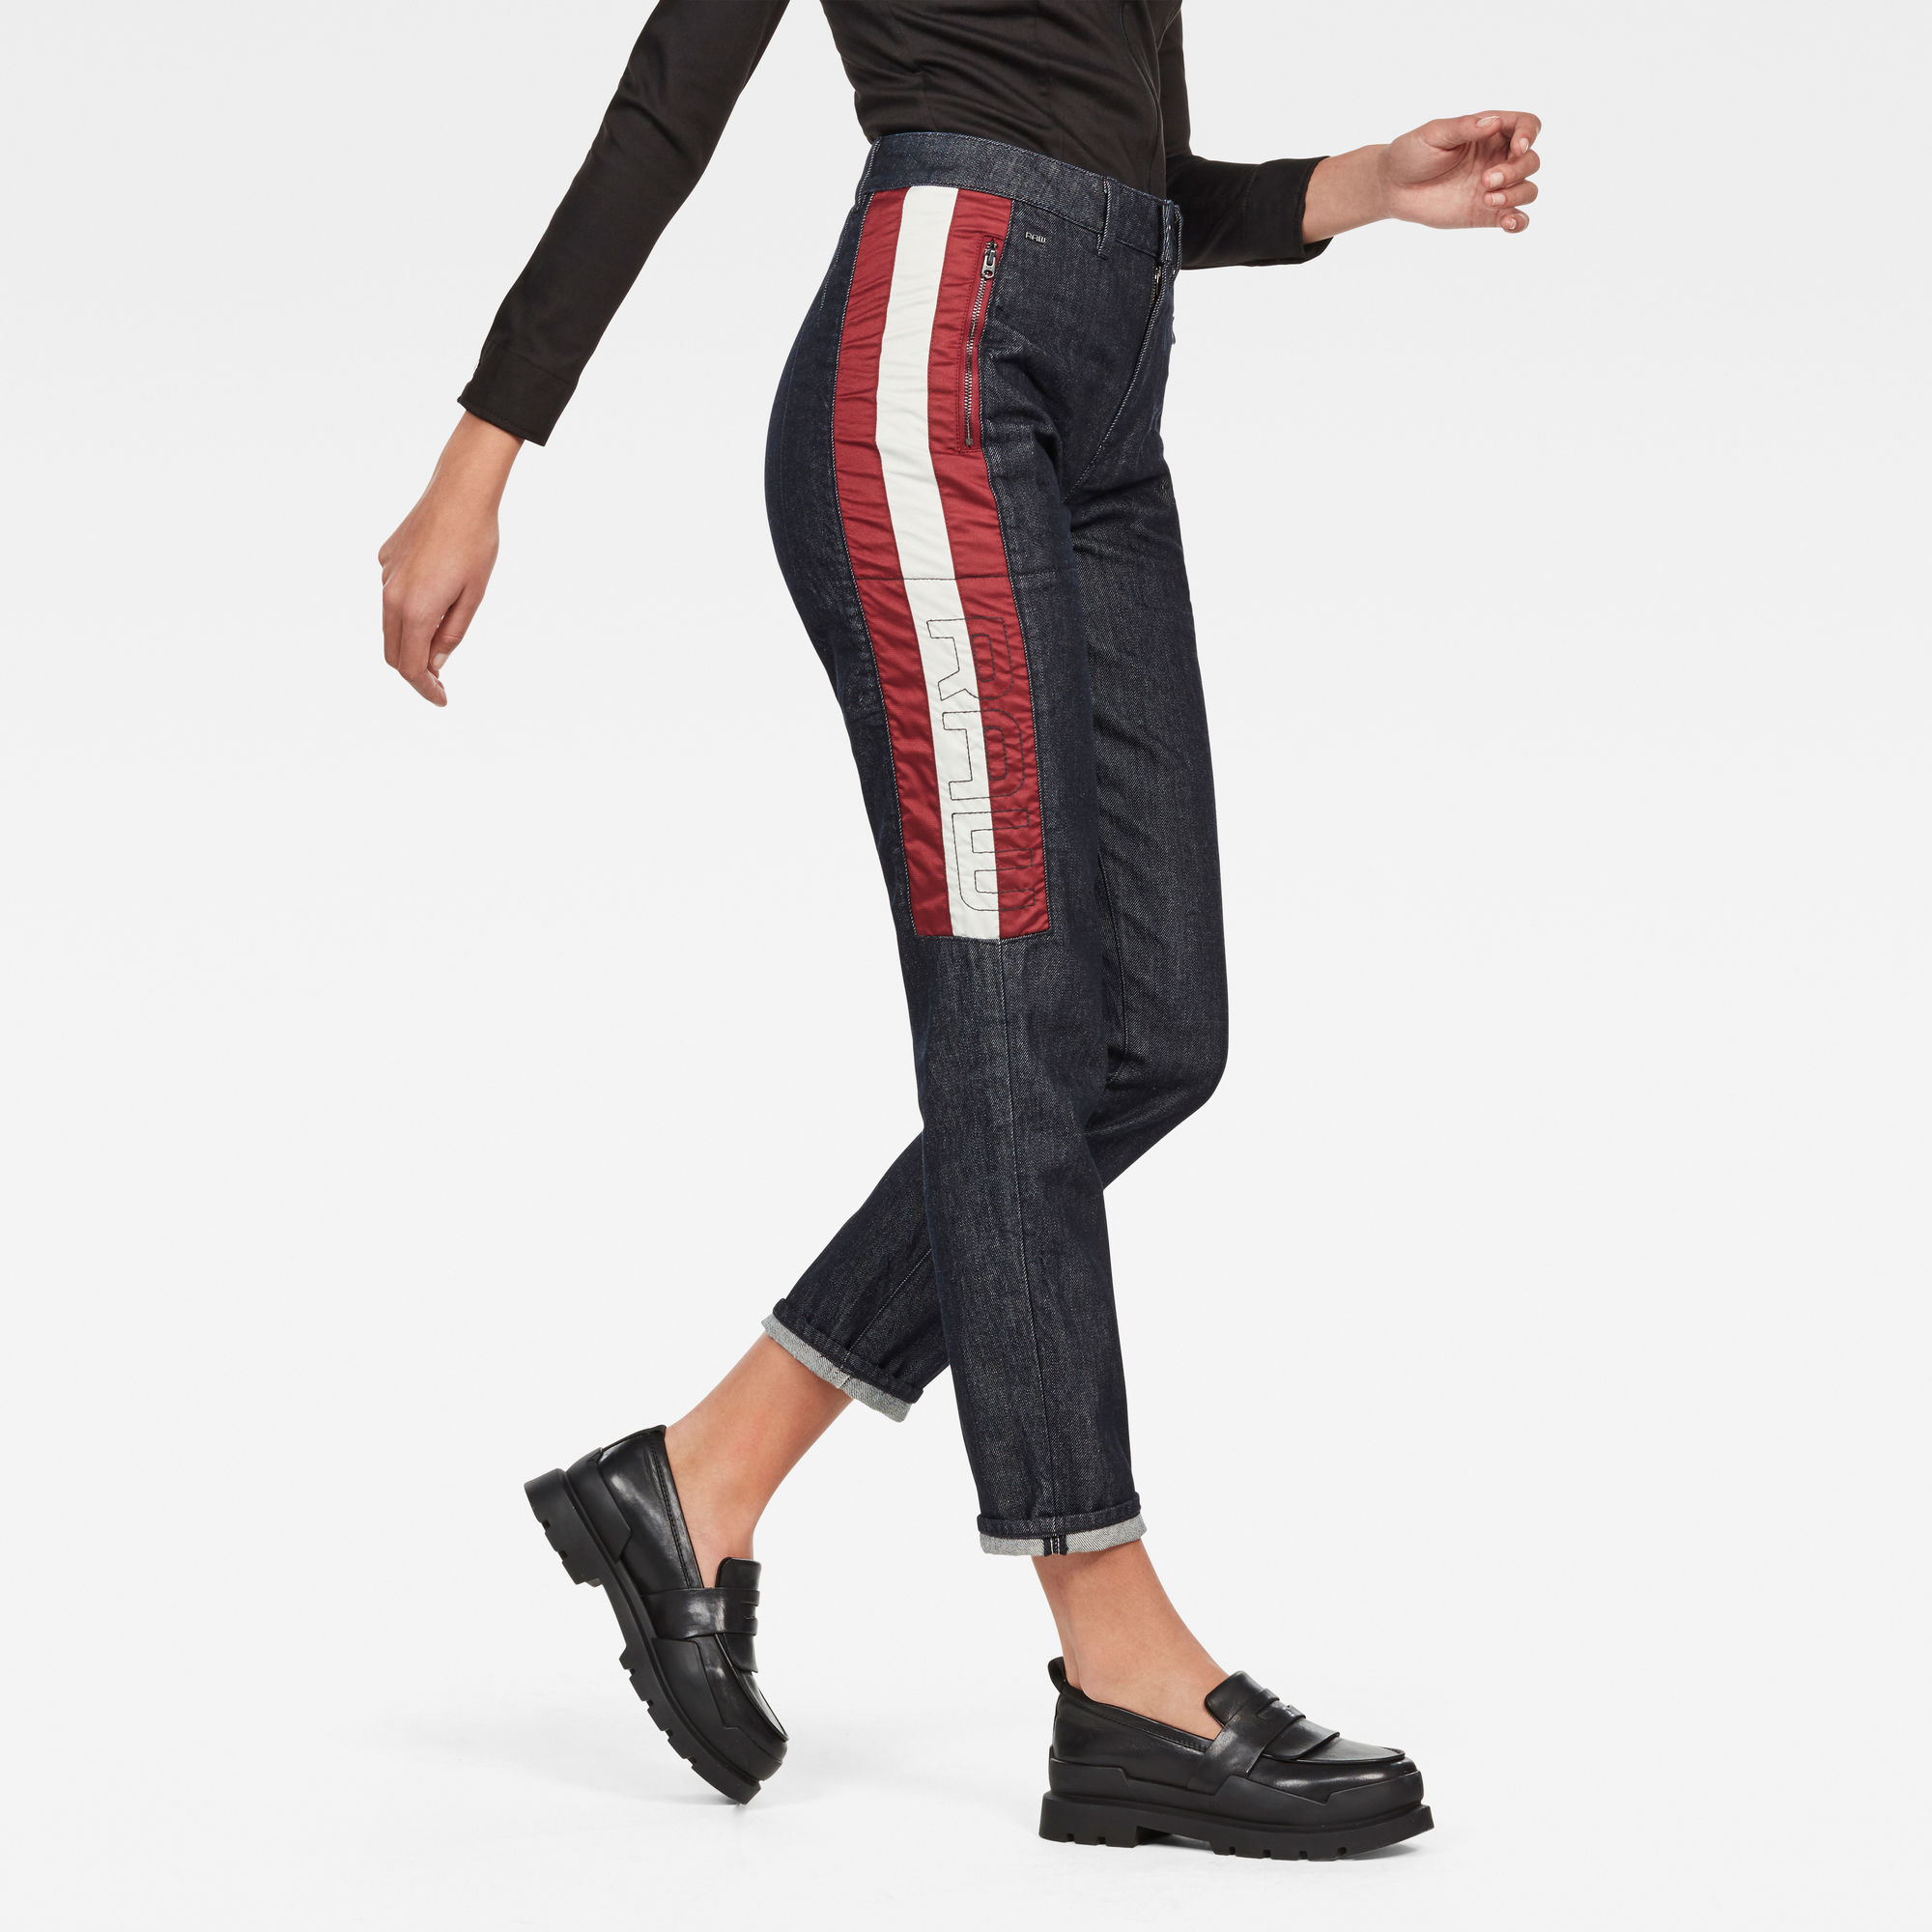 Image of G Star Raw 5621 Moto High Waist Straight Ankle Jeans